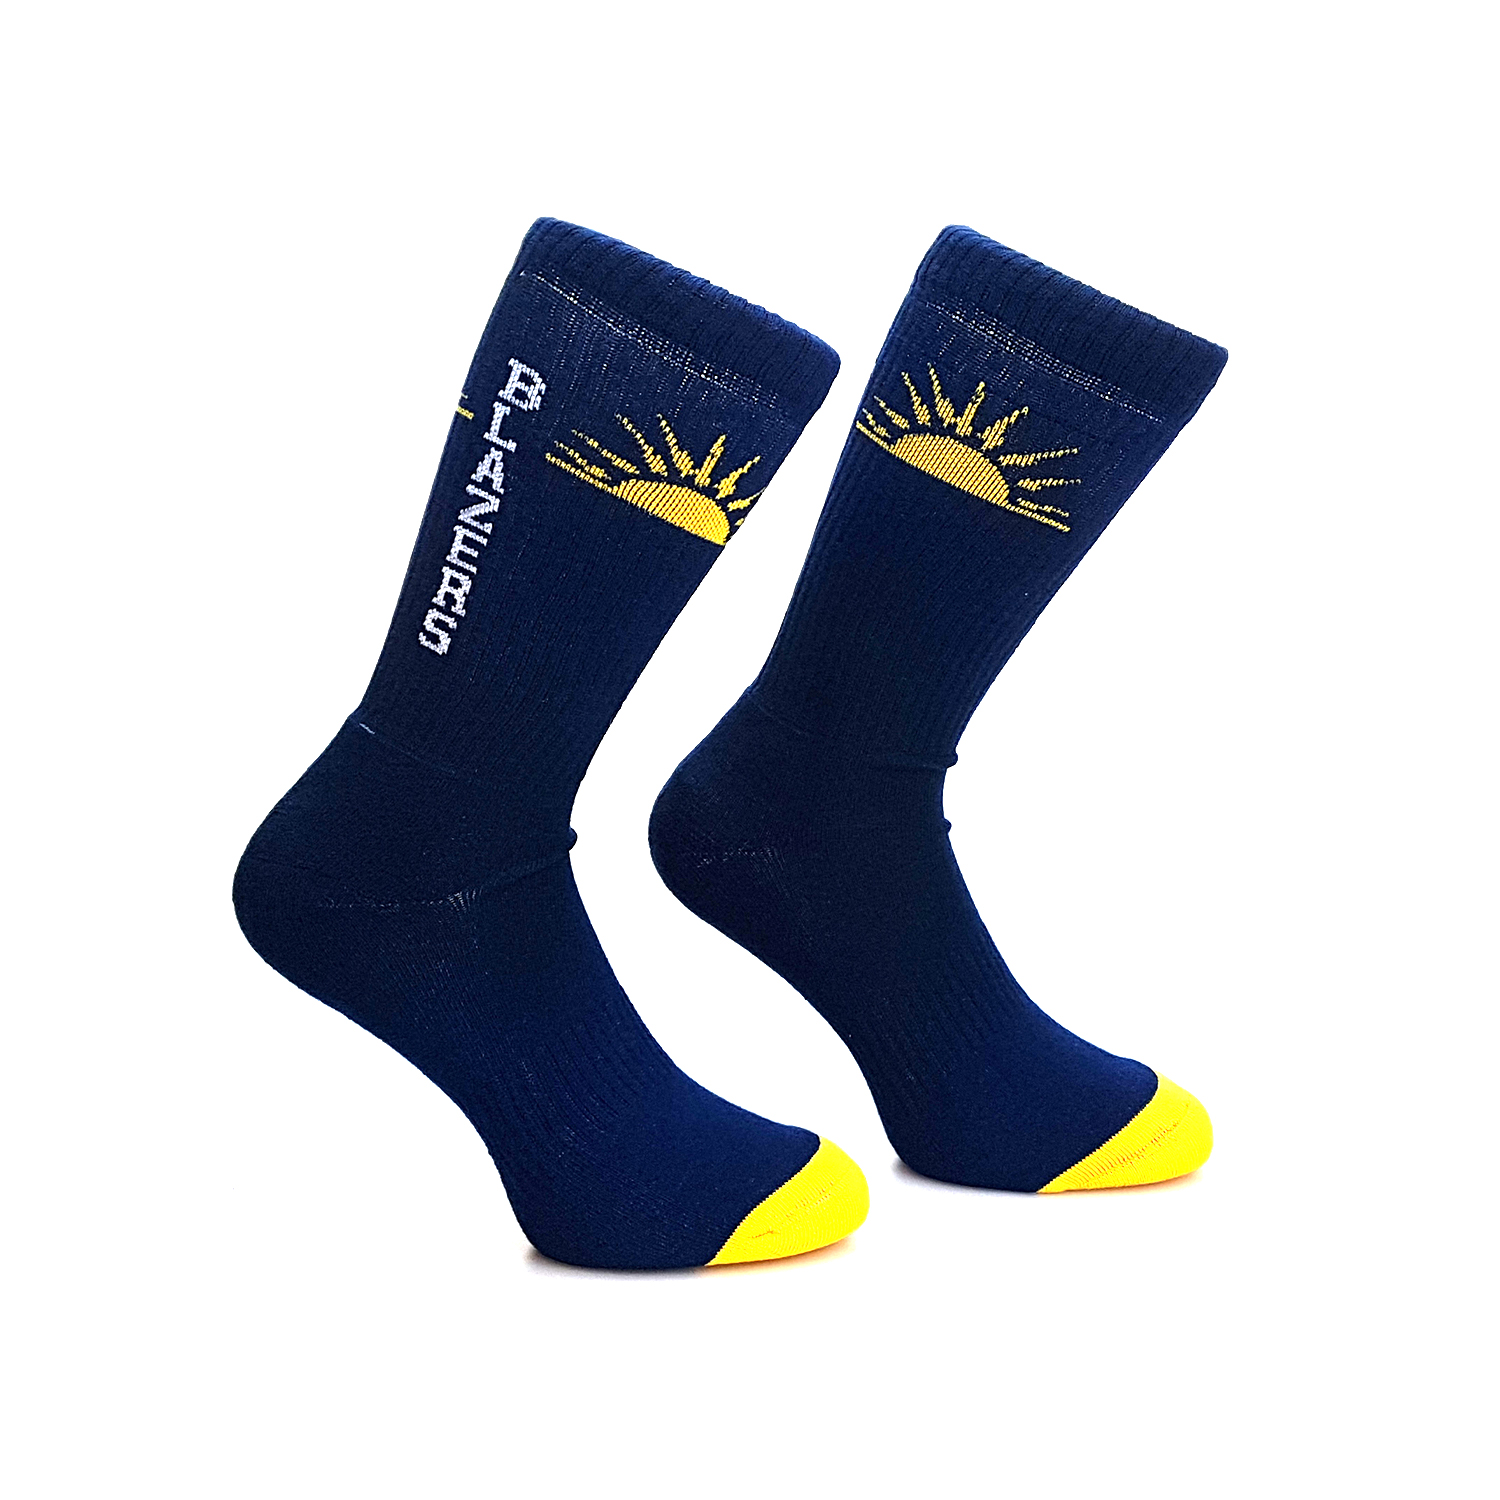 Looking for tailor made Walking, Running and Sports Socks. Design your own Walking, Running and Sports Socks